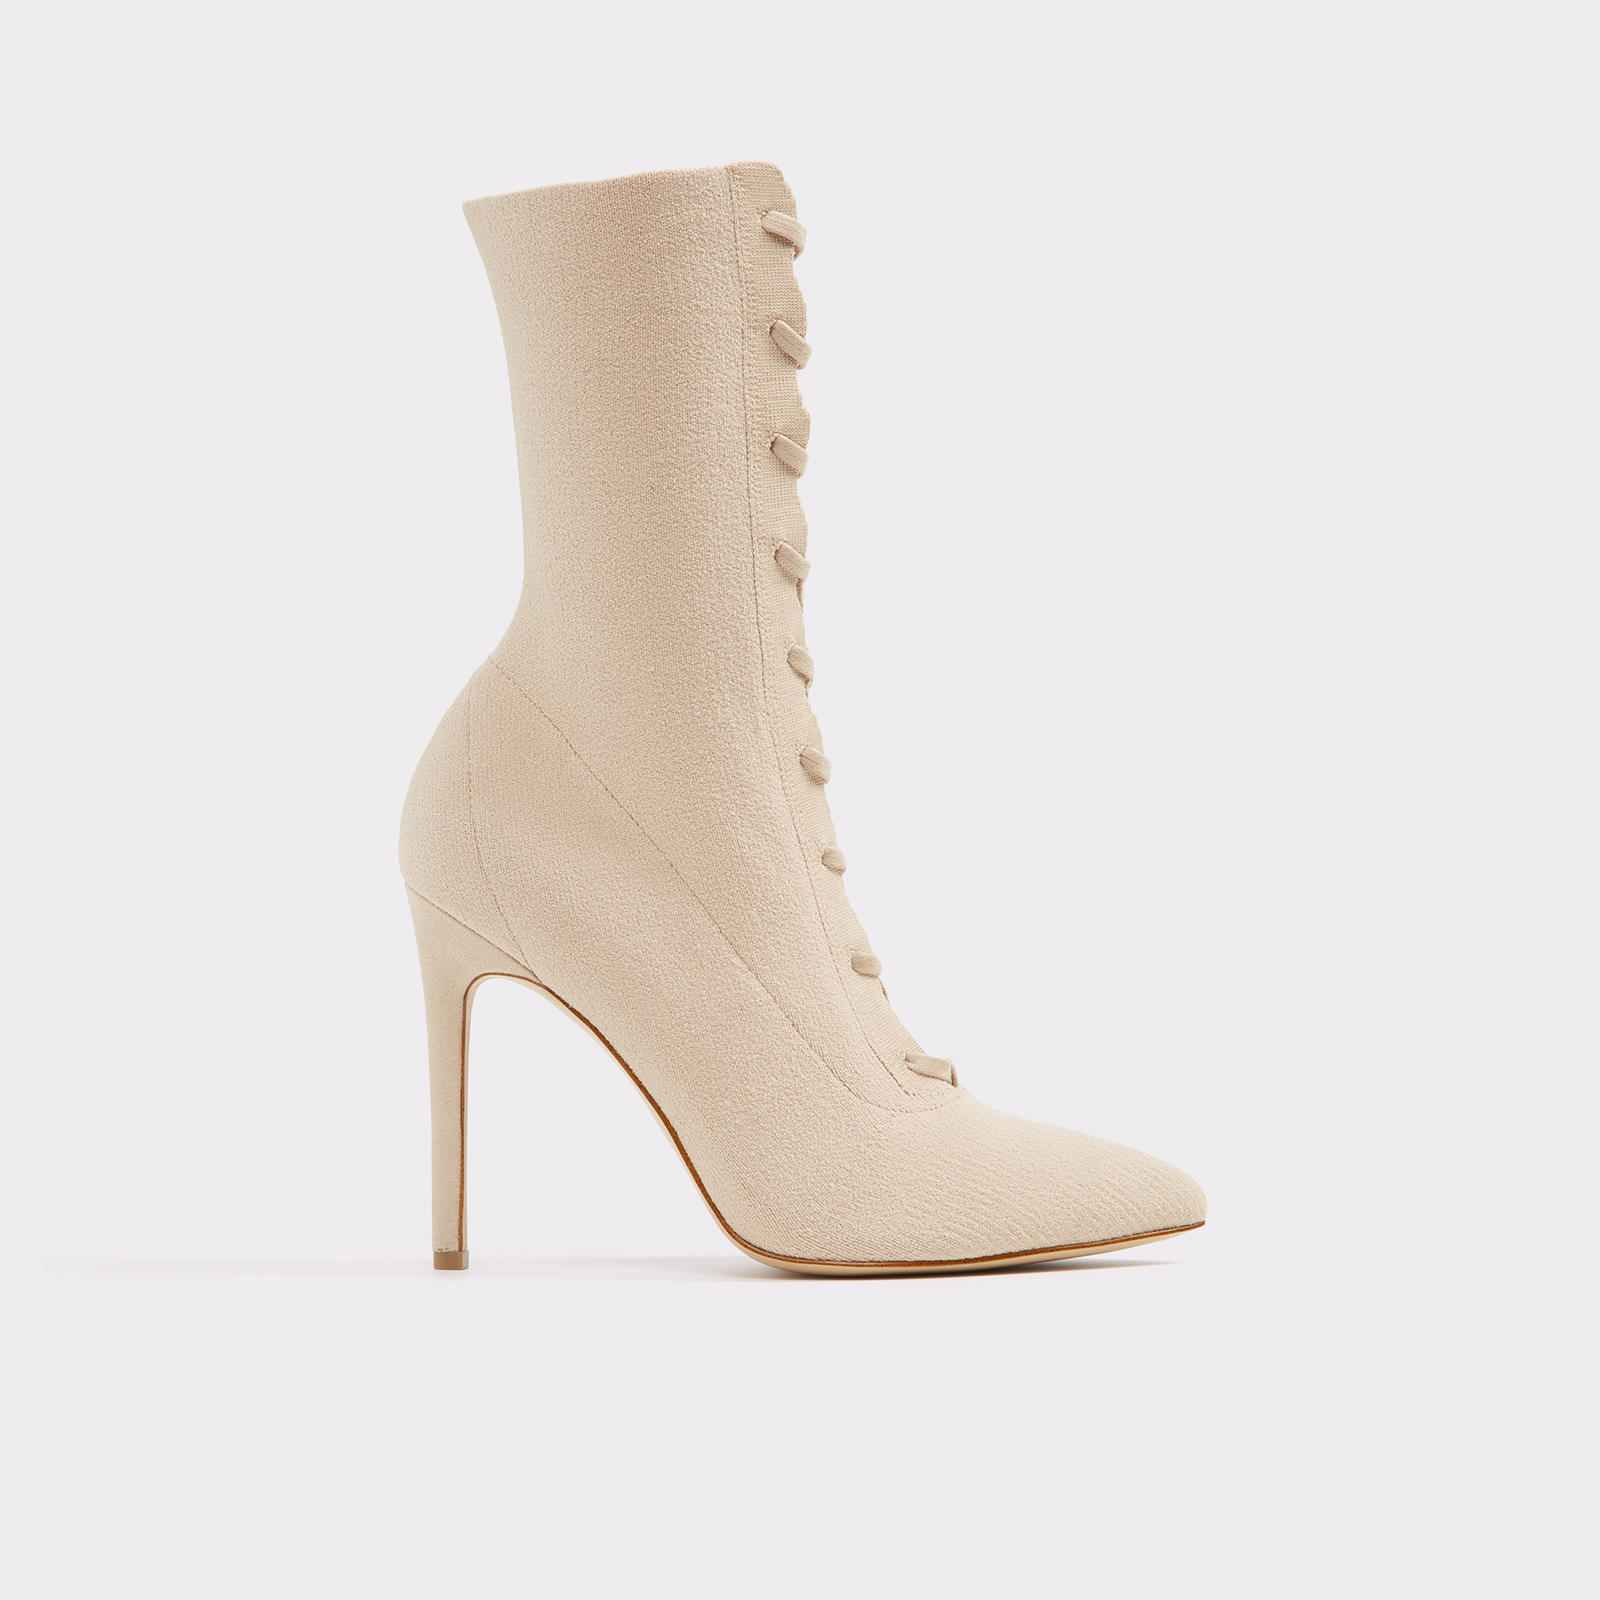 Aldo Miassa Bone Women's Dress Boots | Hermosaz